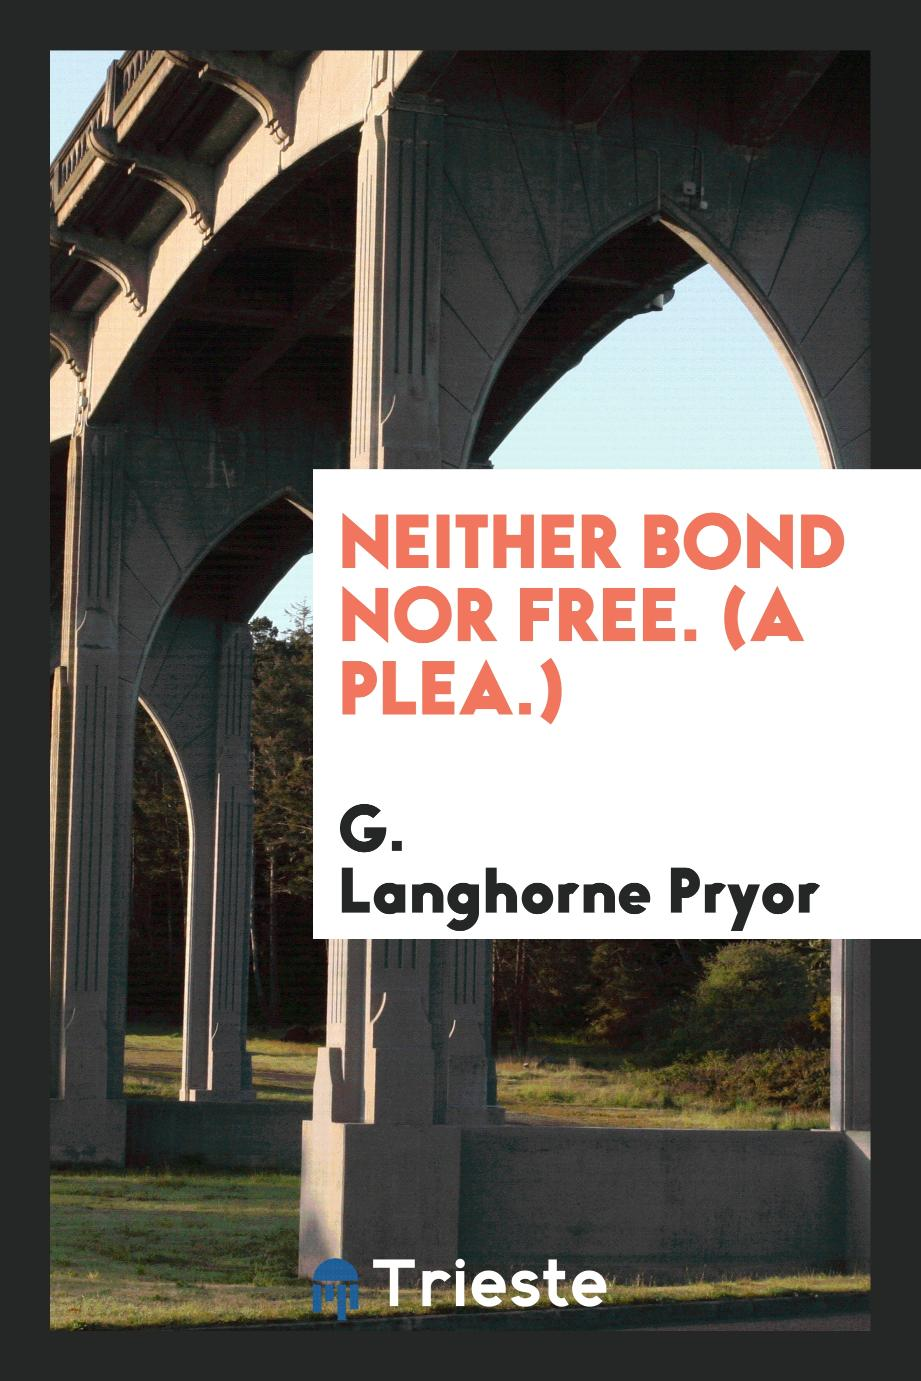 Neither bond nor free. (A plea.)